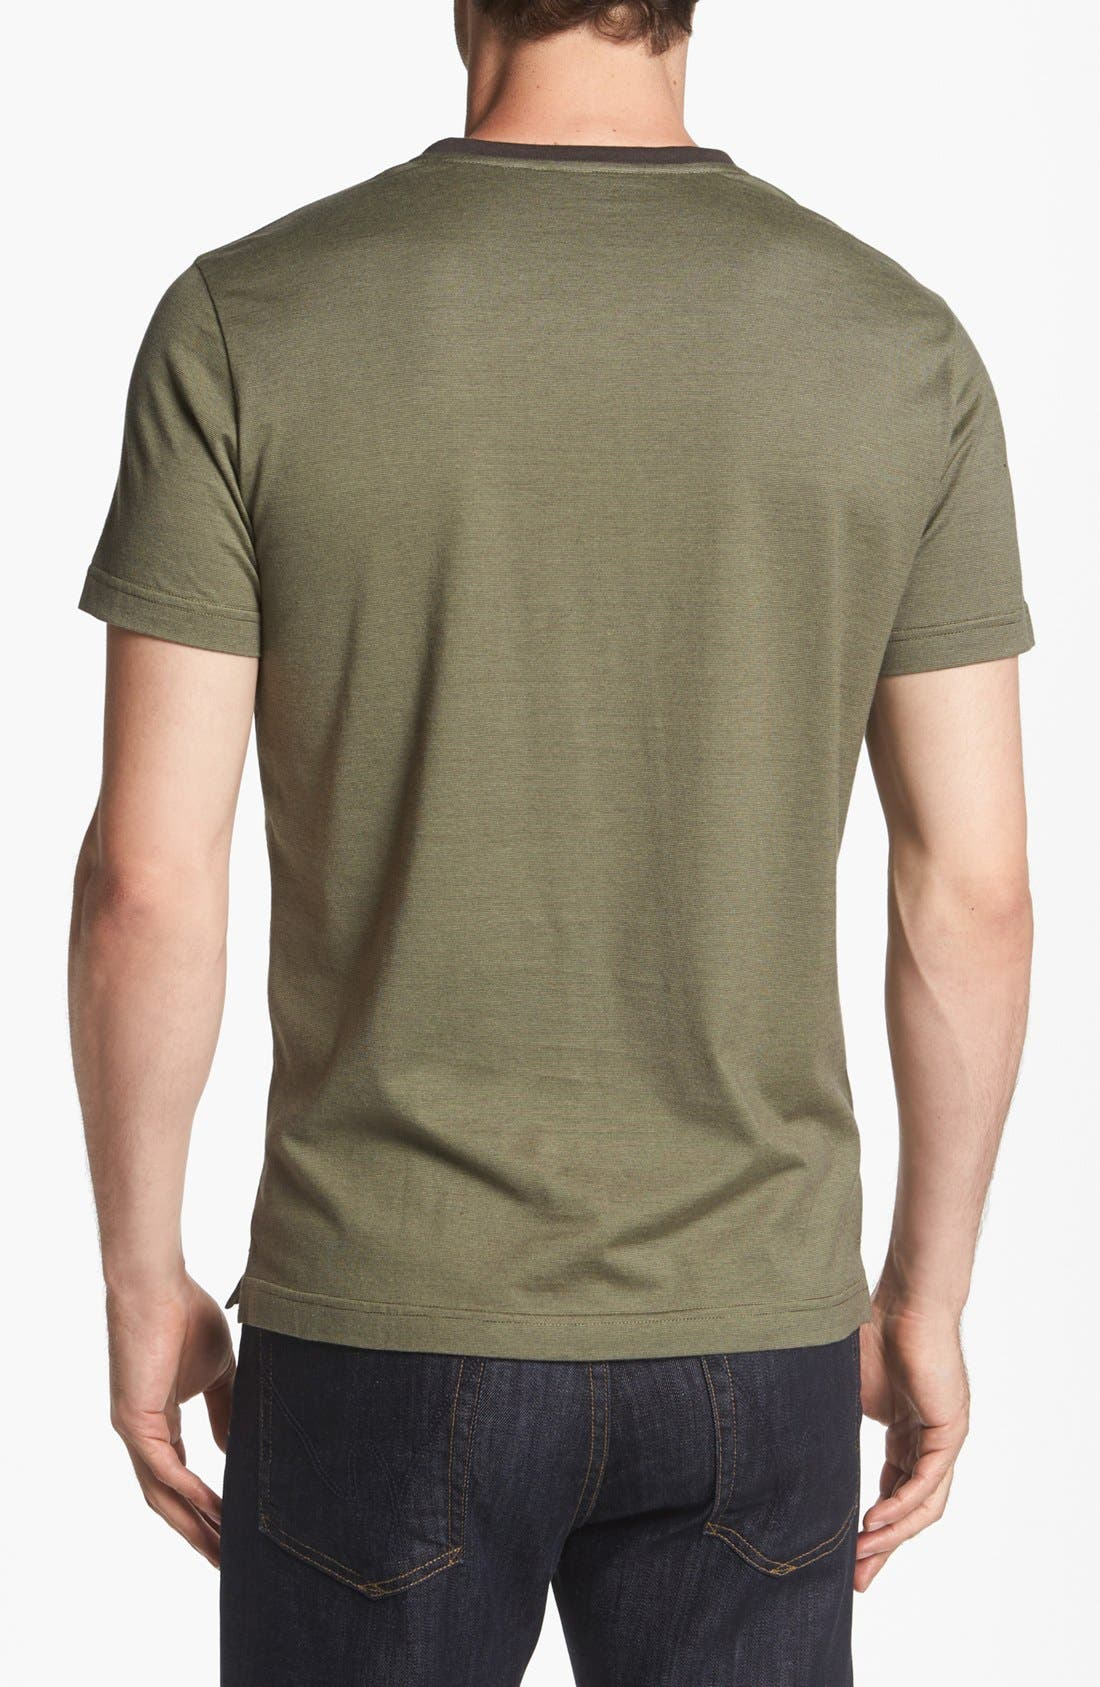 Alternate Image 2  - Robert Barakett 'Connor' V-Neck T-shirt